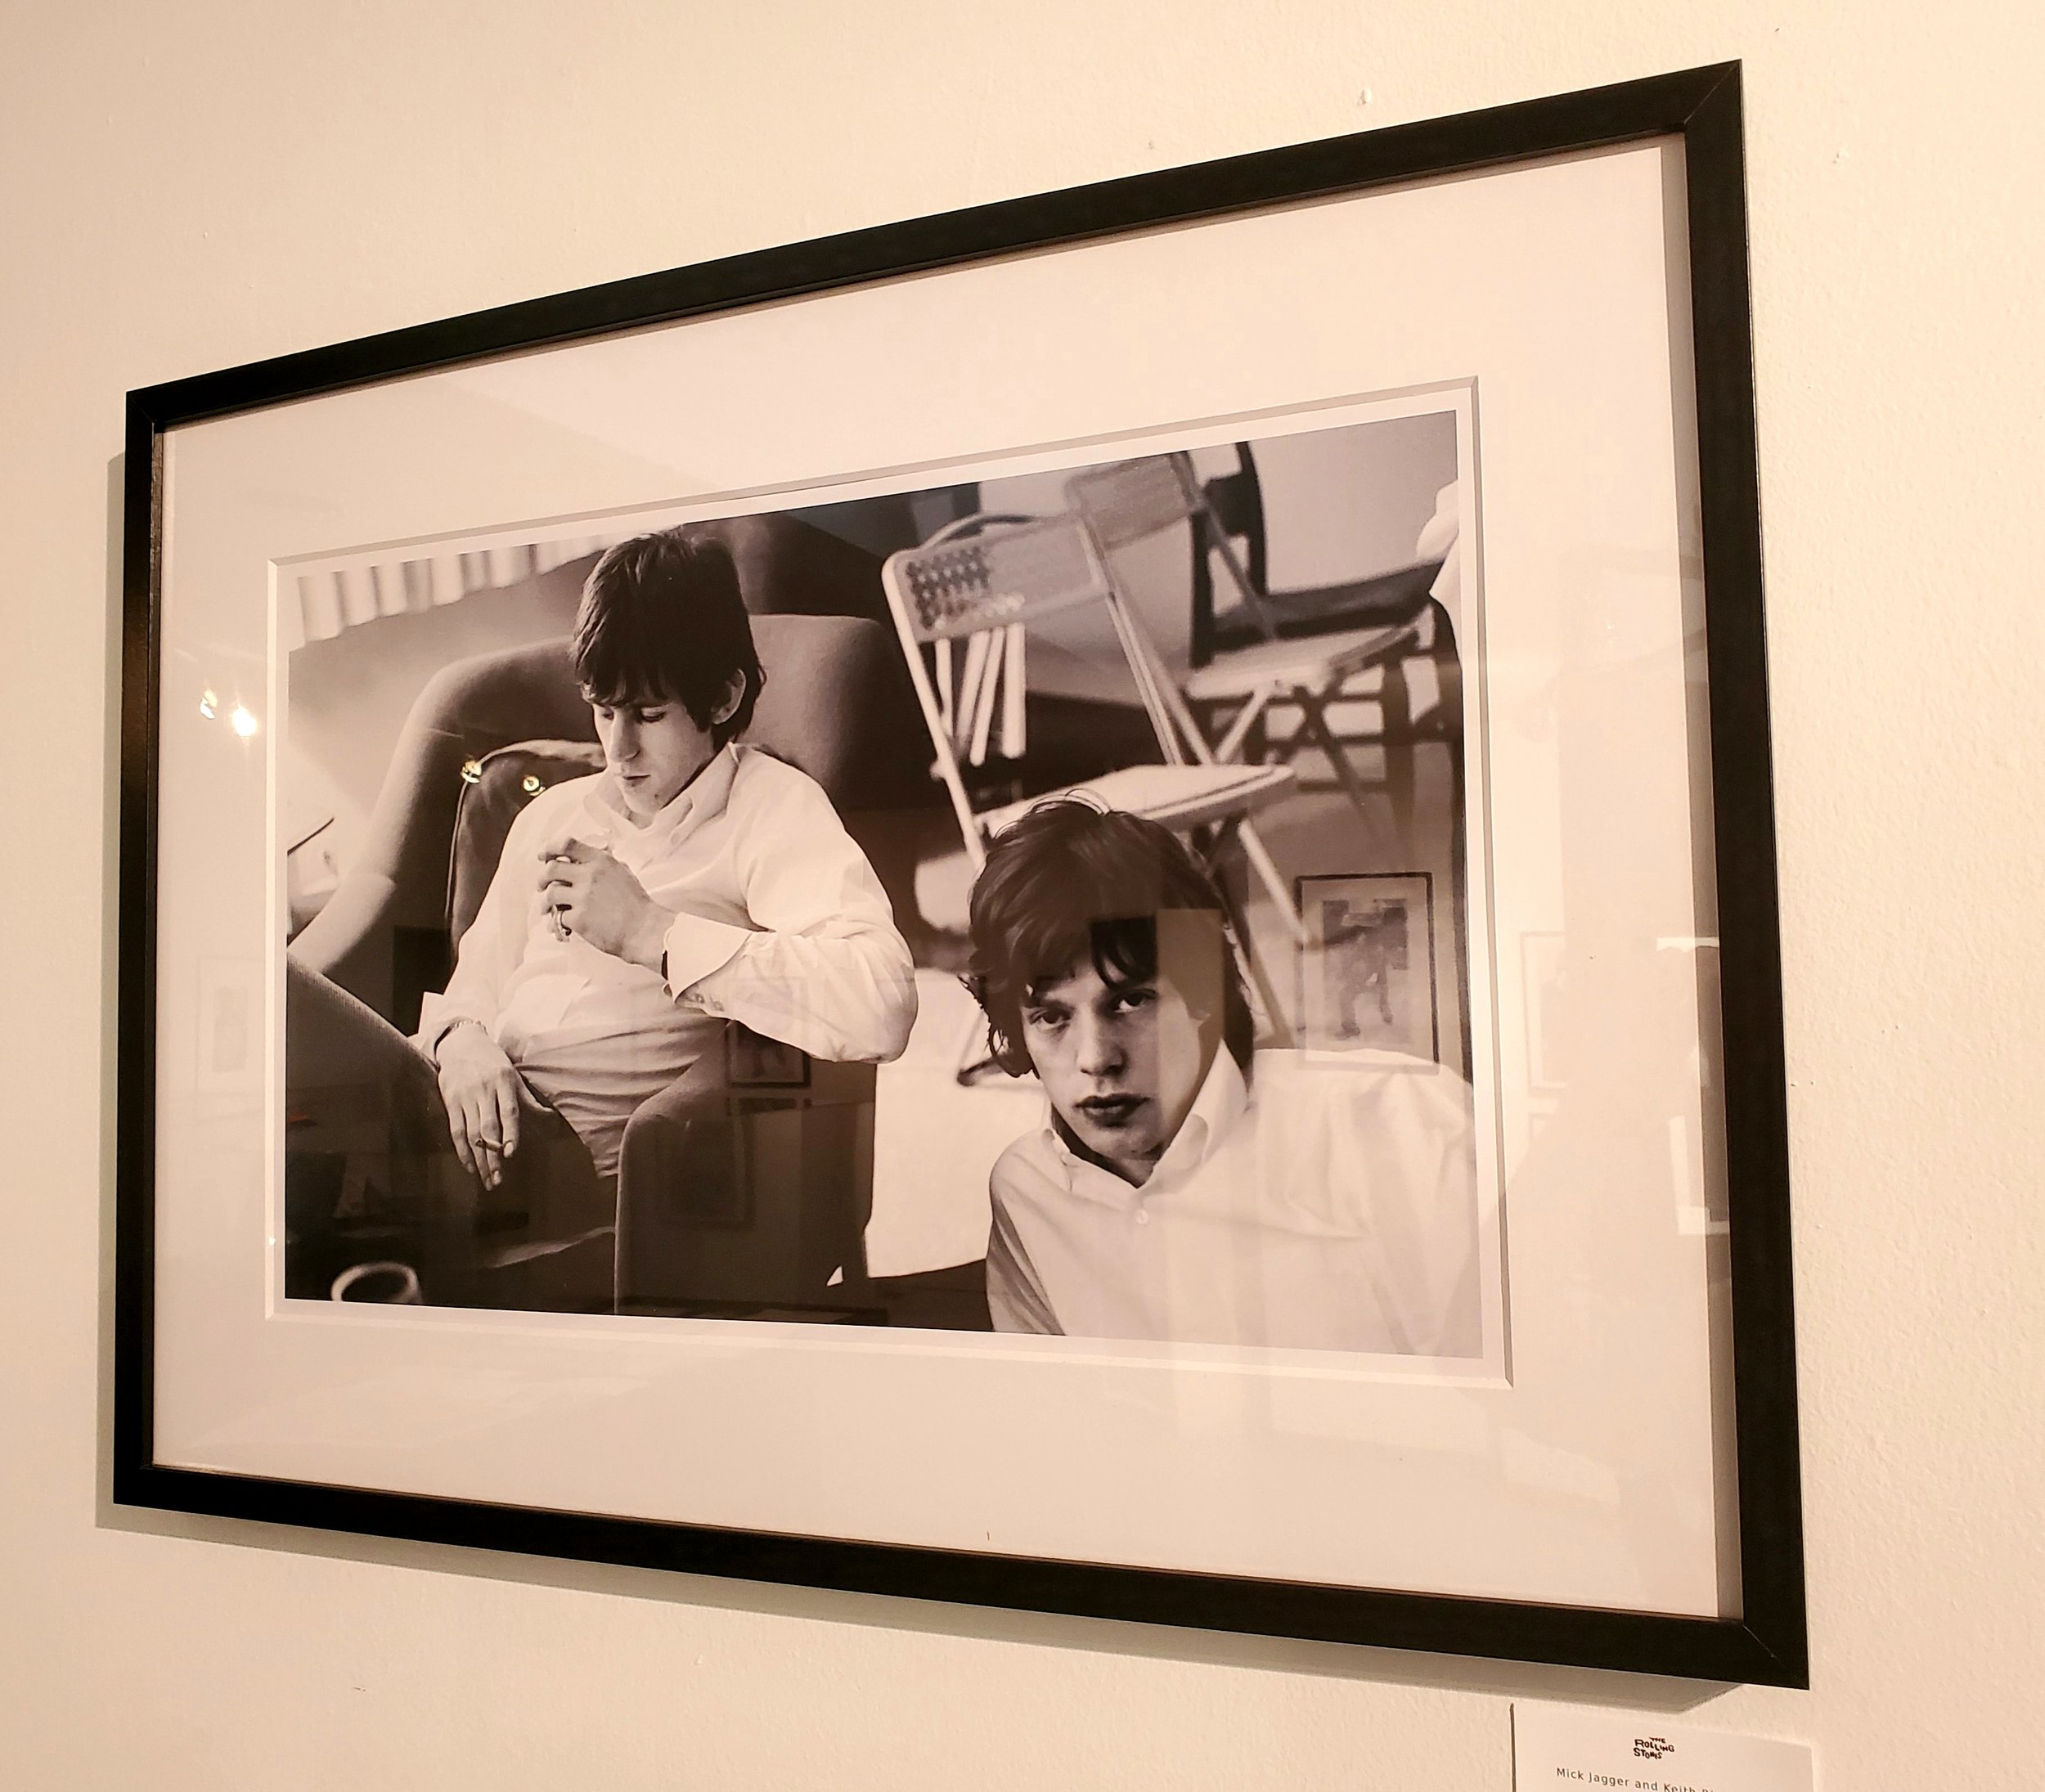 Photo of Keith Richards and Mick Jagger in Chicago in June of 1964